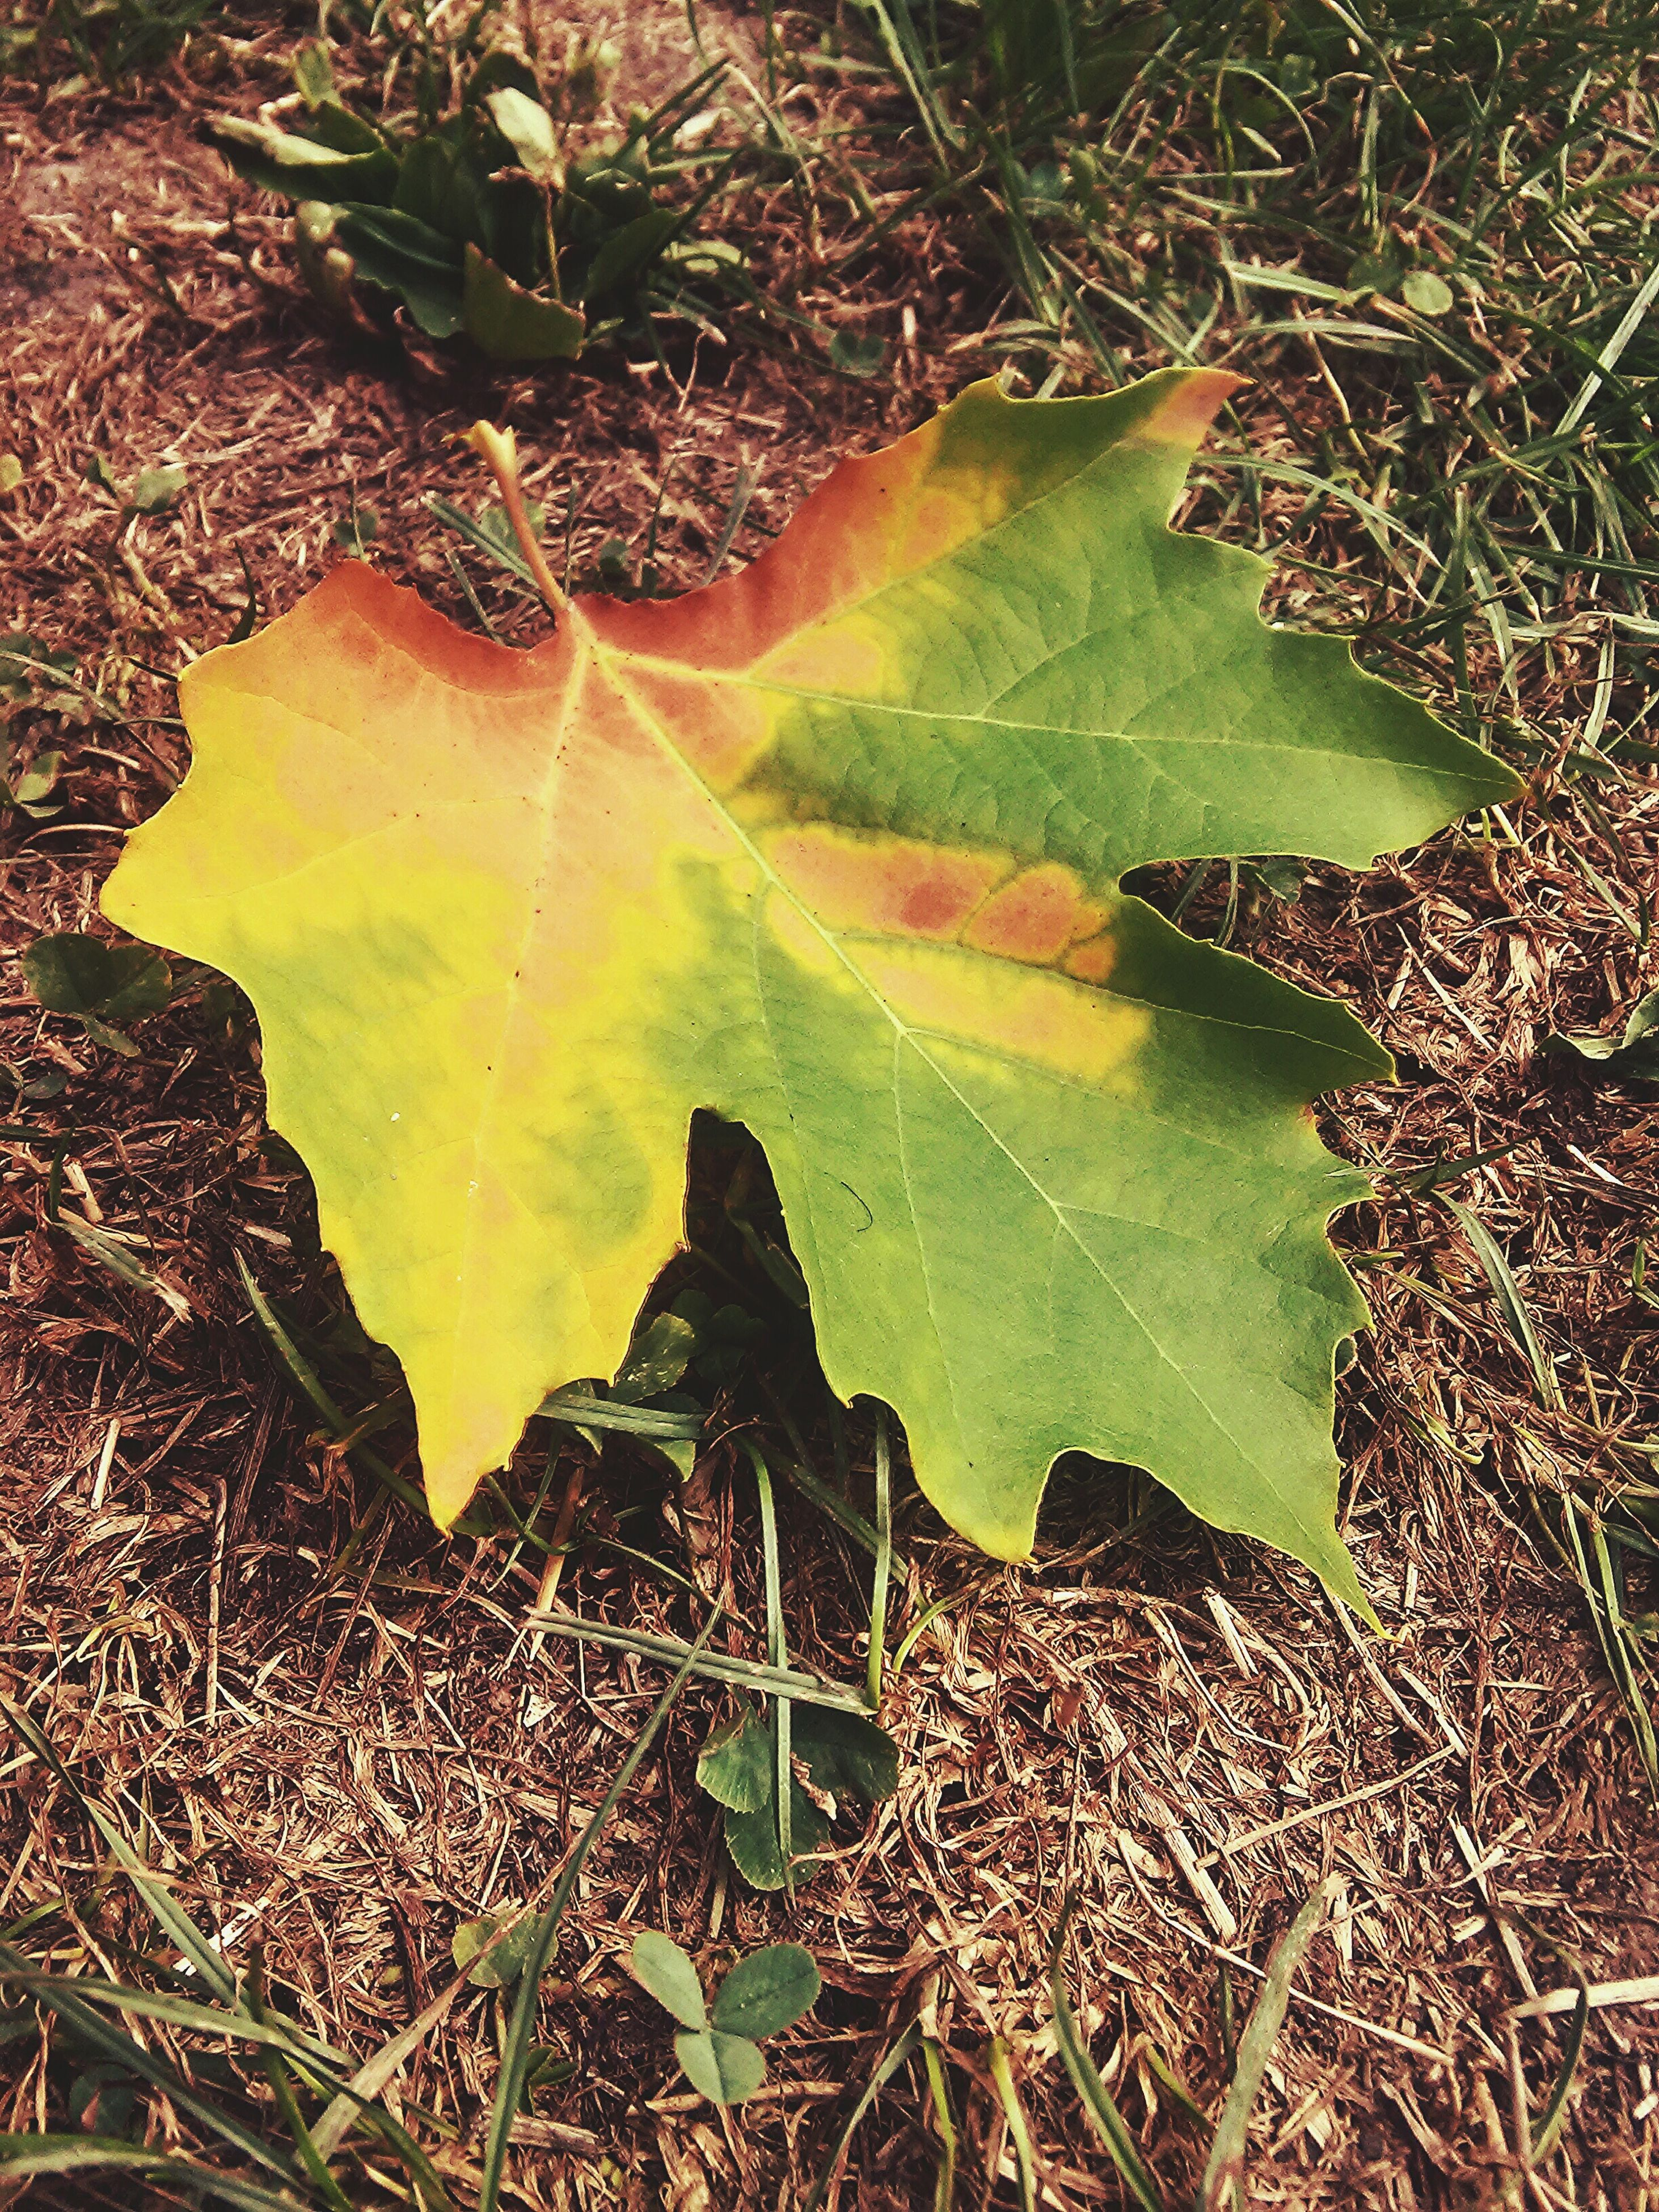 leaf, autumn, high angle view, change, dry, leaves, nature, fallen, season, grass, leaf vein, field, wet, natural pattern, close-up, water, maple leaf, tranquility, outdoors, day